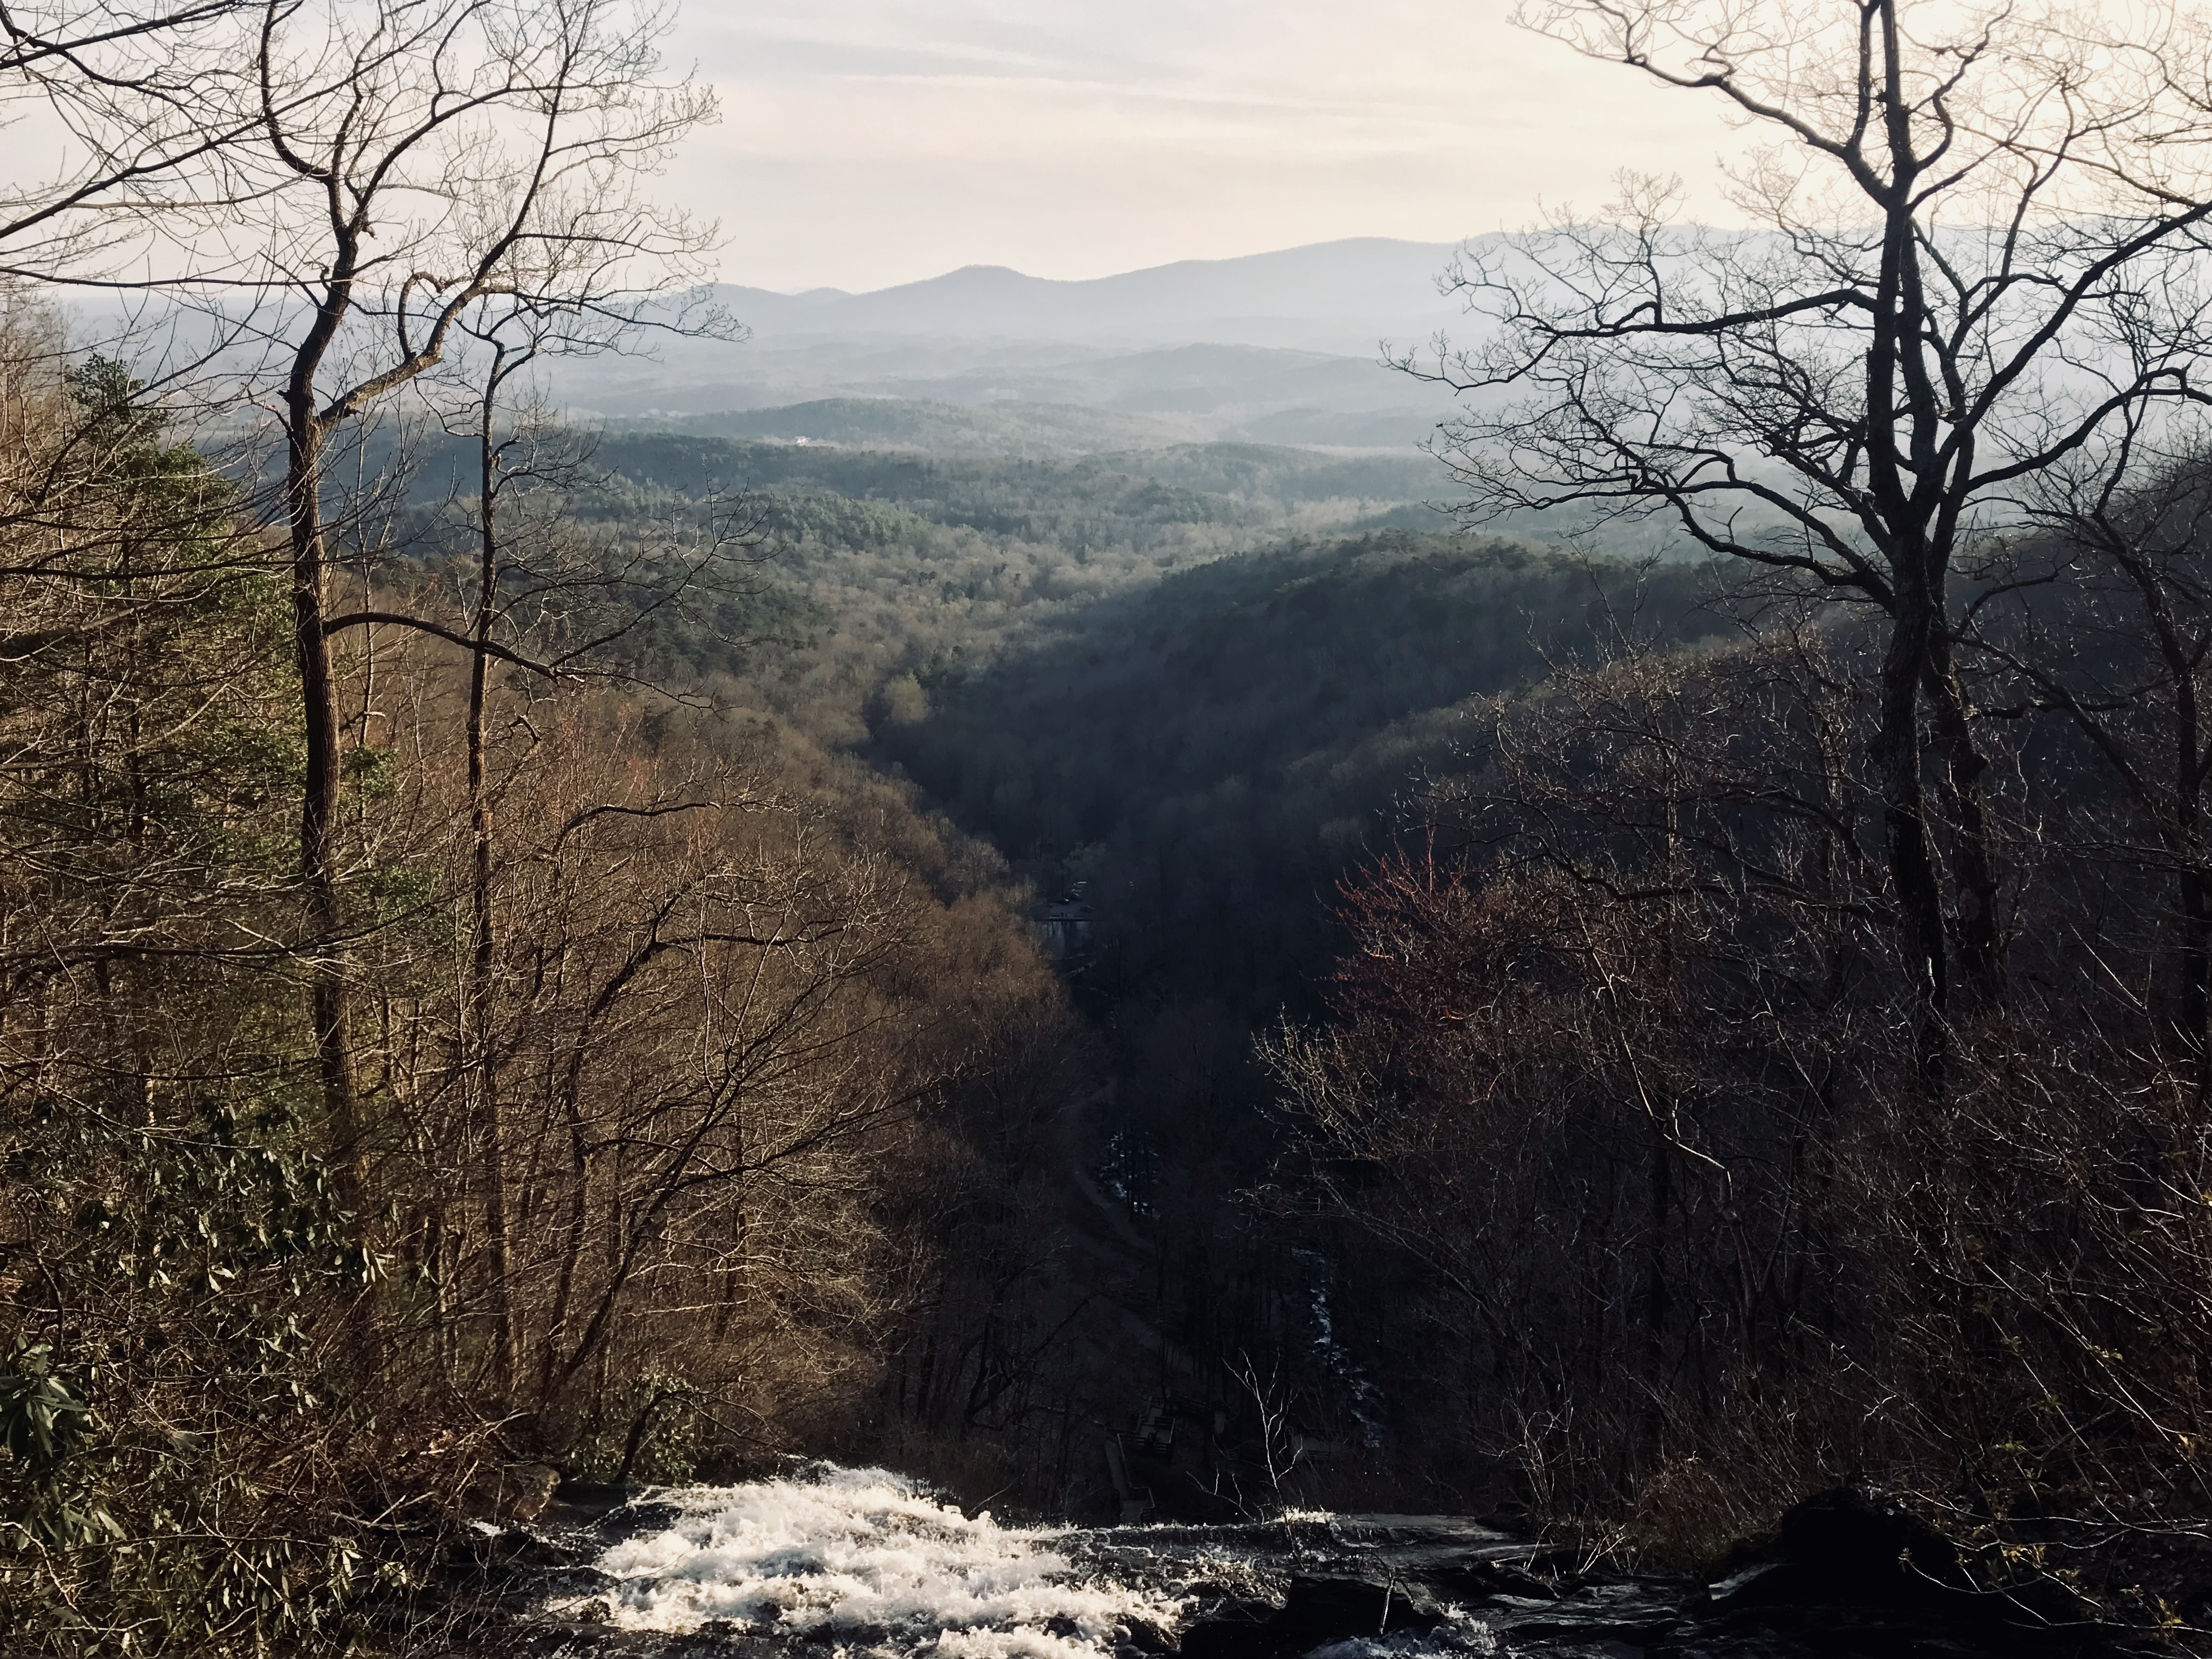 Final Reflections Before the Appalachian Trail